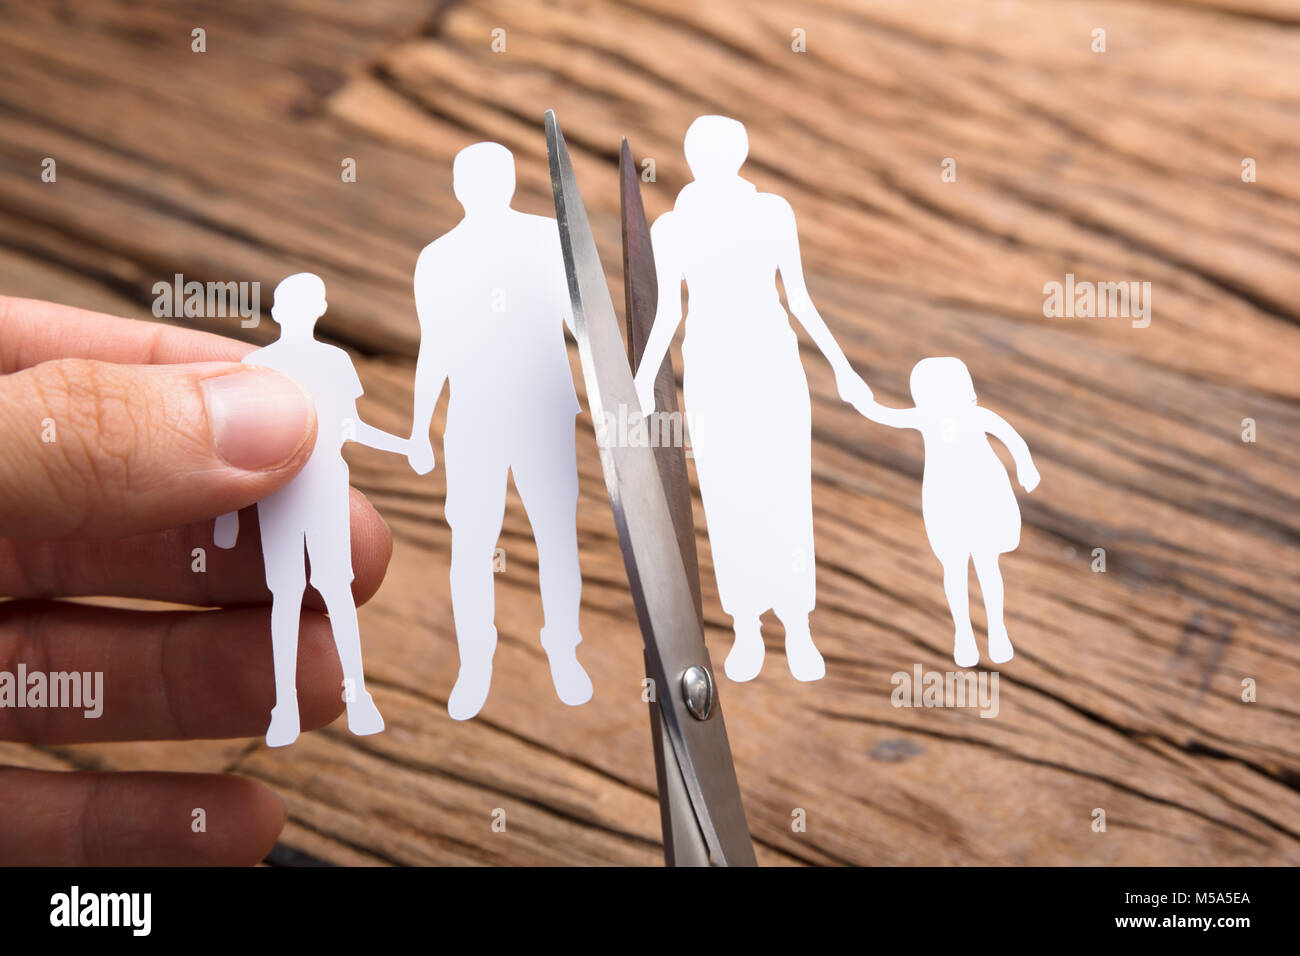 Cropped image of hand cutting paper family with scissors over wooden table - Stock Image